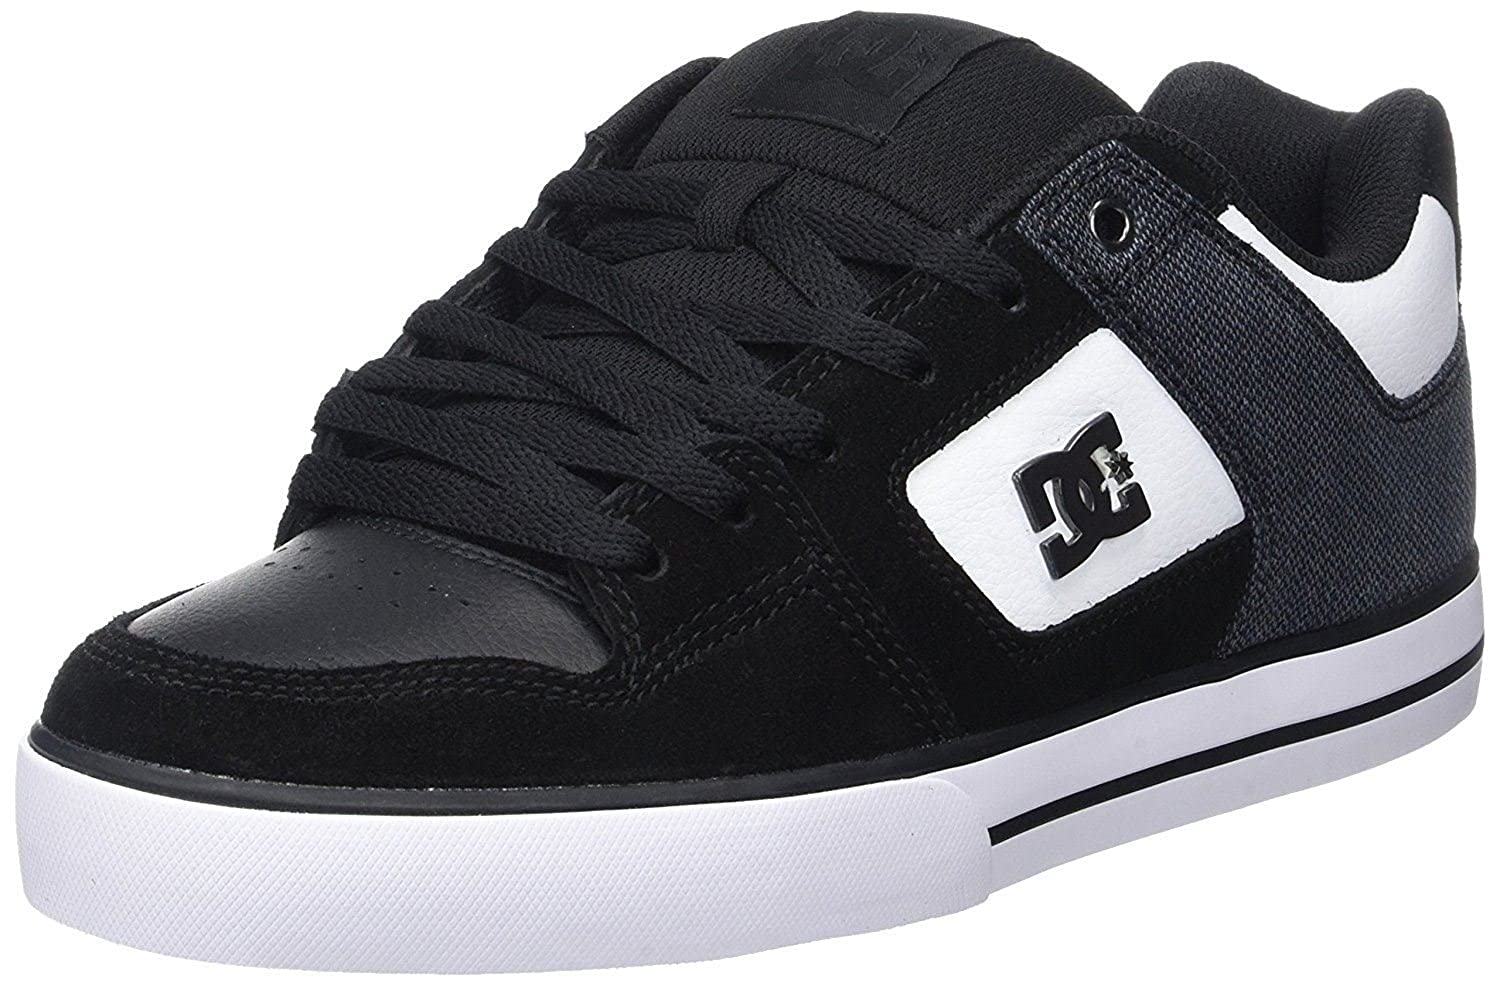 White Mens Leather Skate Trainers Shoes